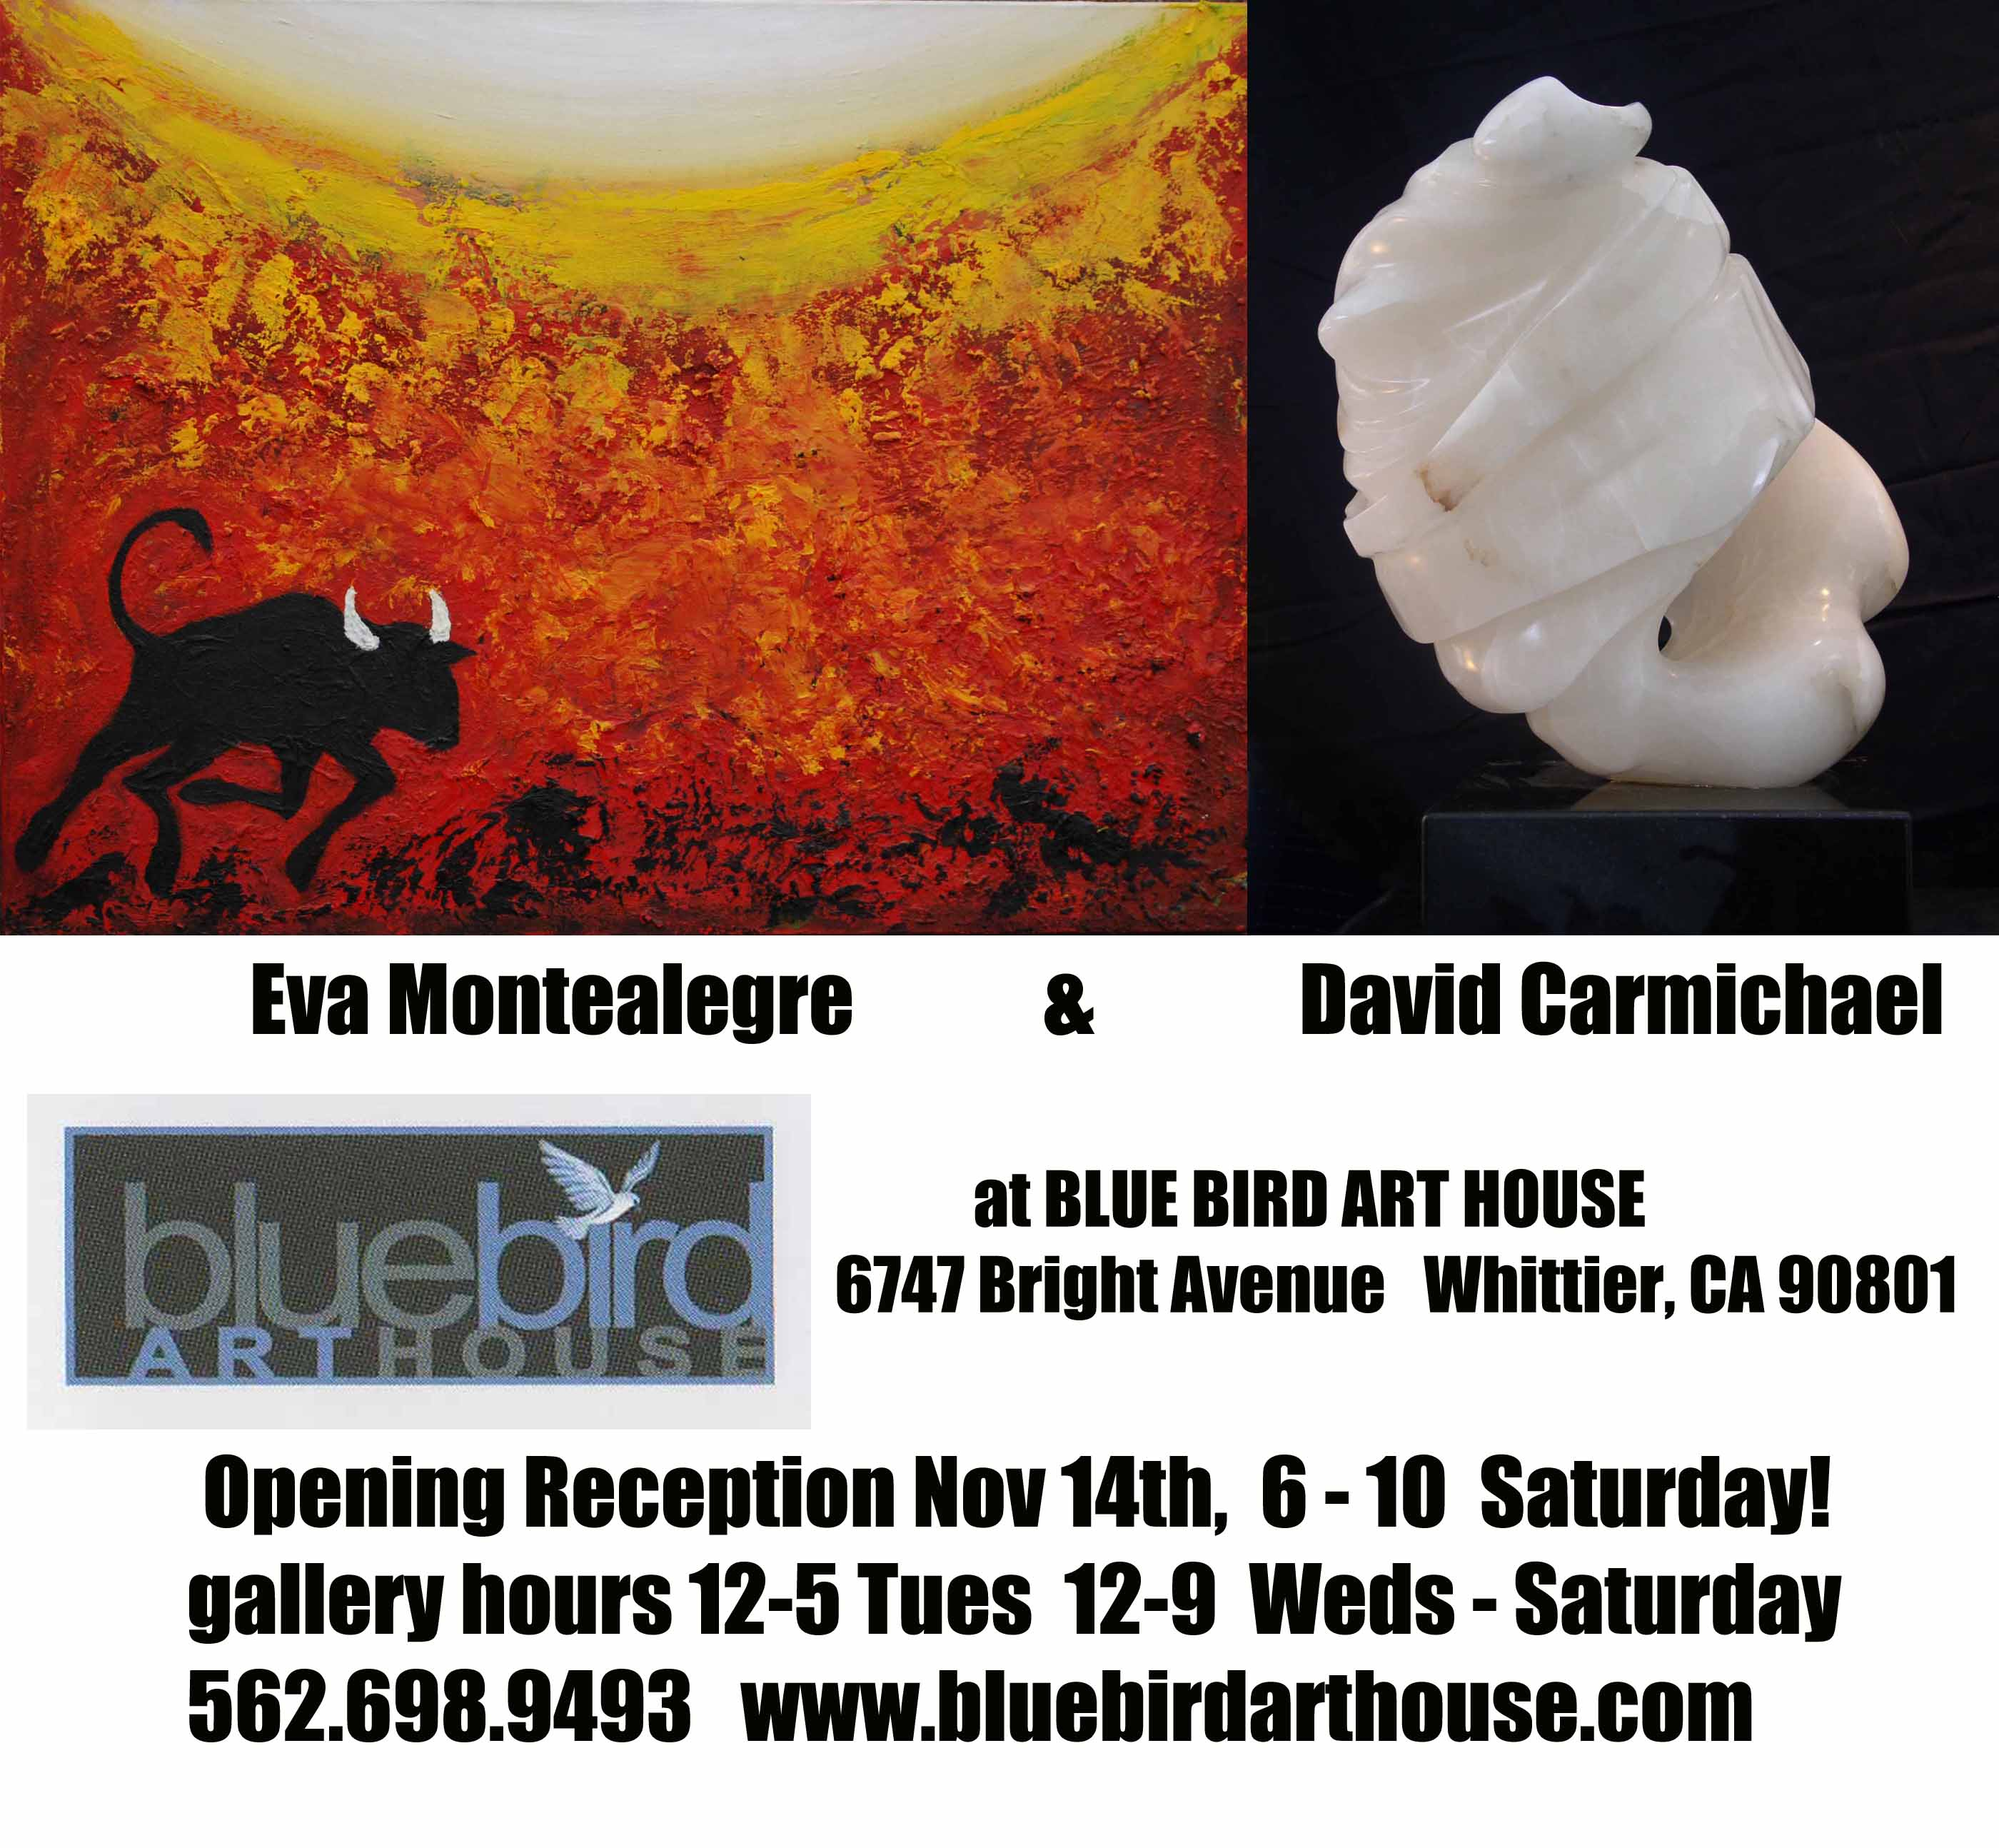 Blue Bird Art House announcement